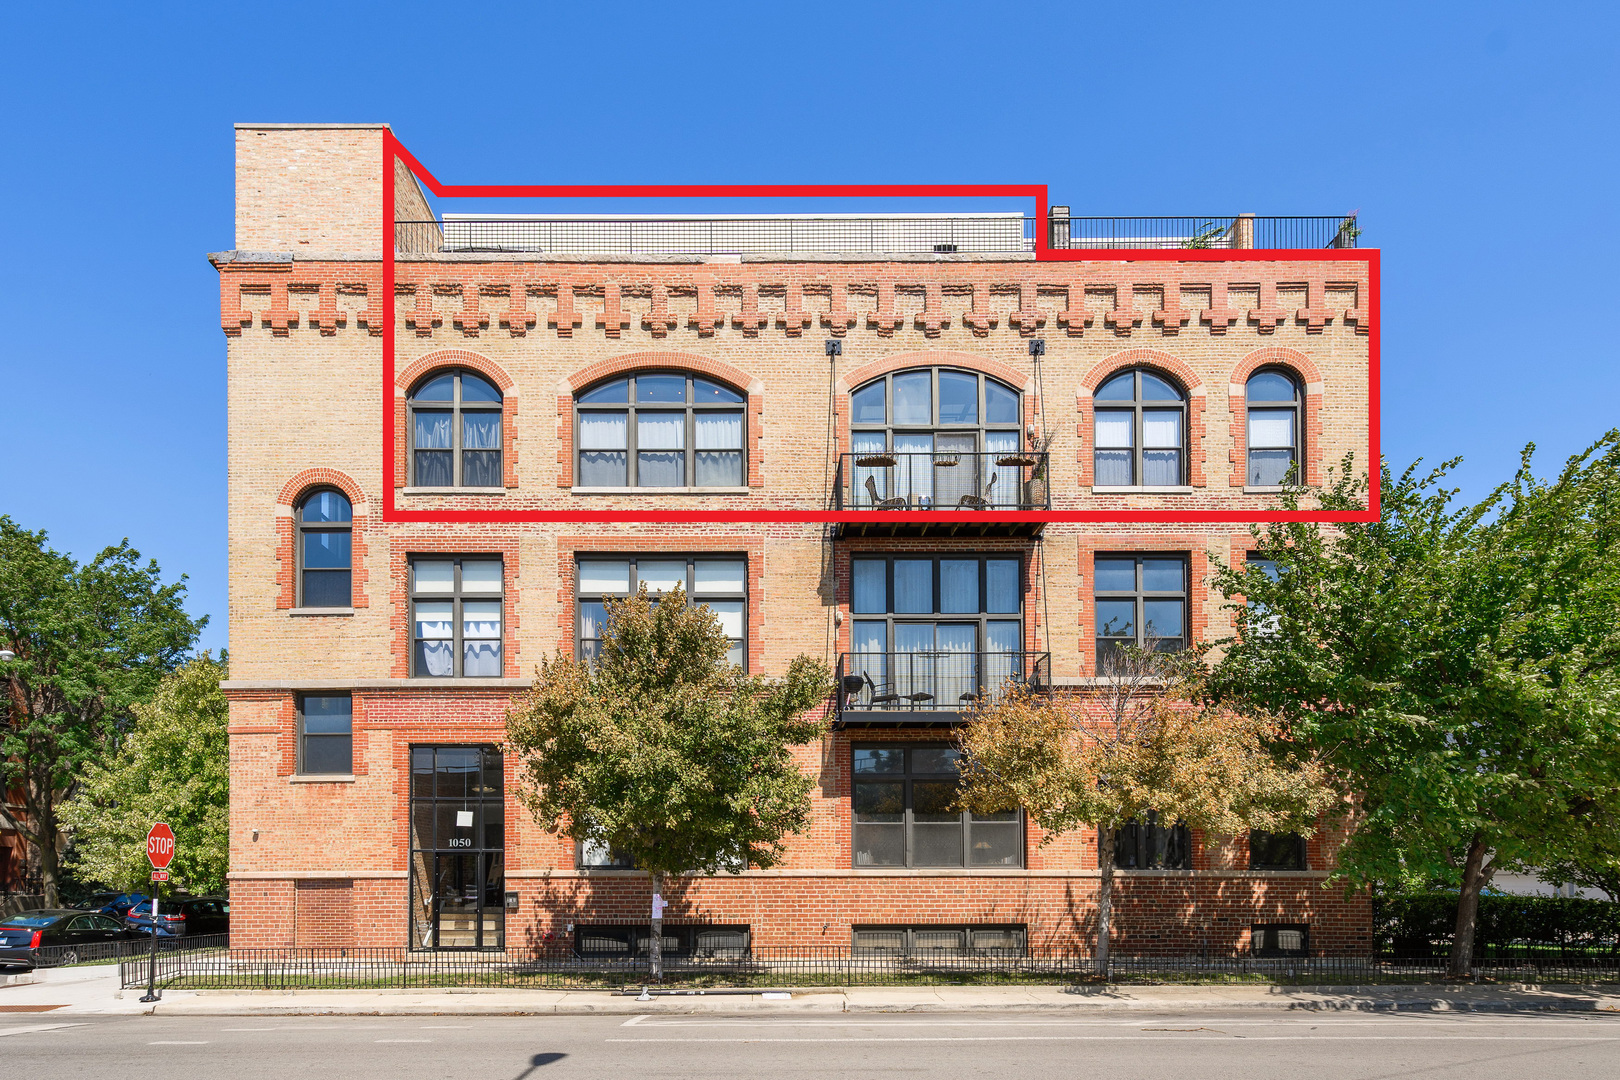 1050 West HUBBARD Street, Bucktown, Illinois